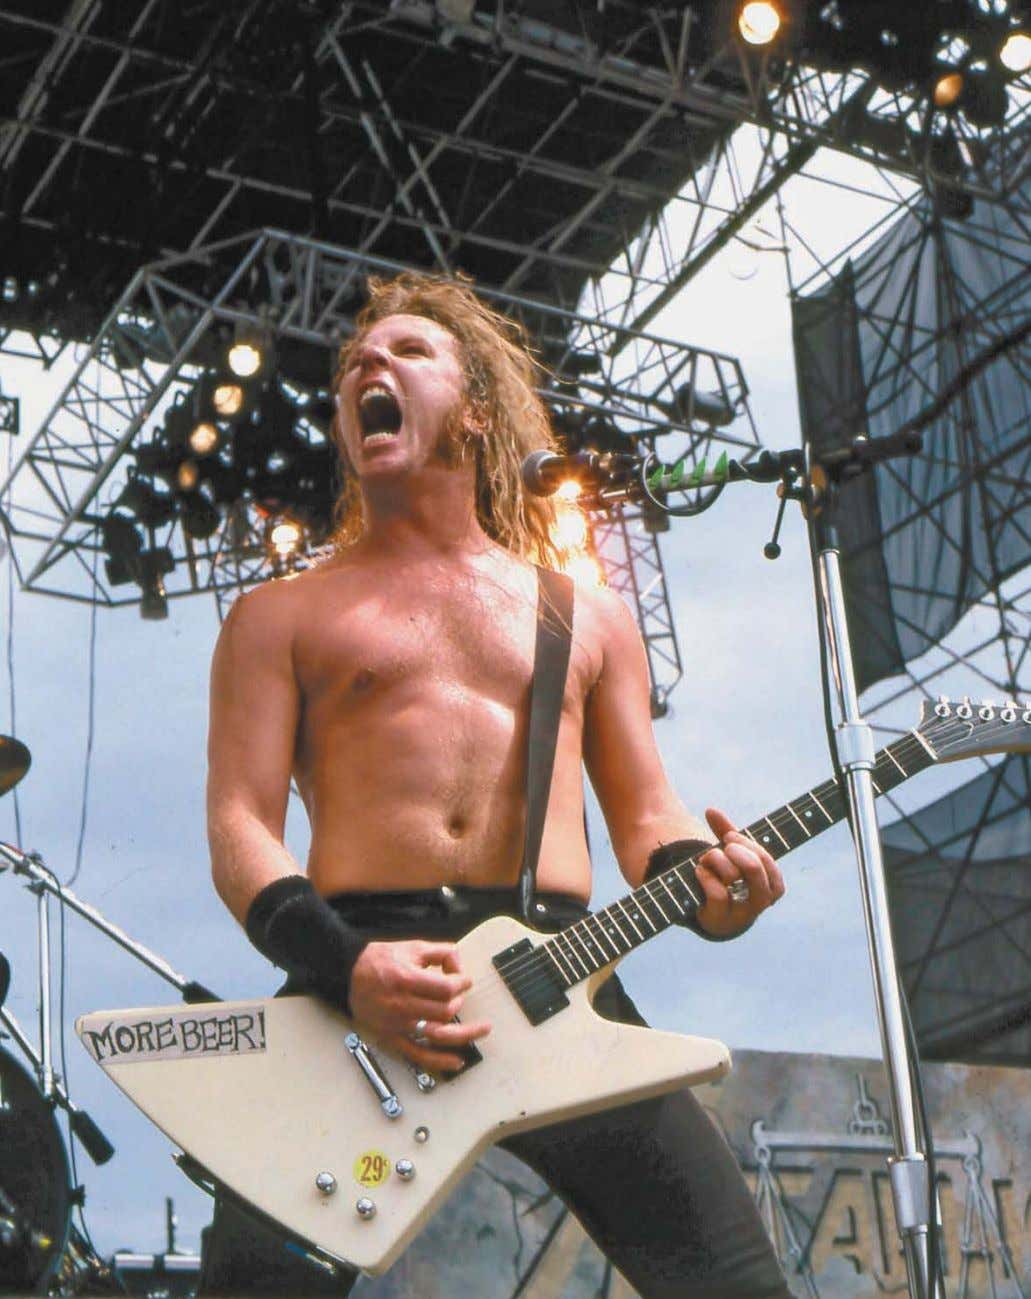 unchain your brain 79 Monsters of Rock, Cotton Bowl, Dallas, Texas, July 3, 1988. Frank White